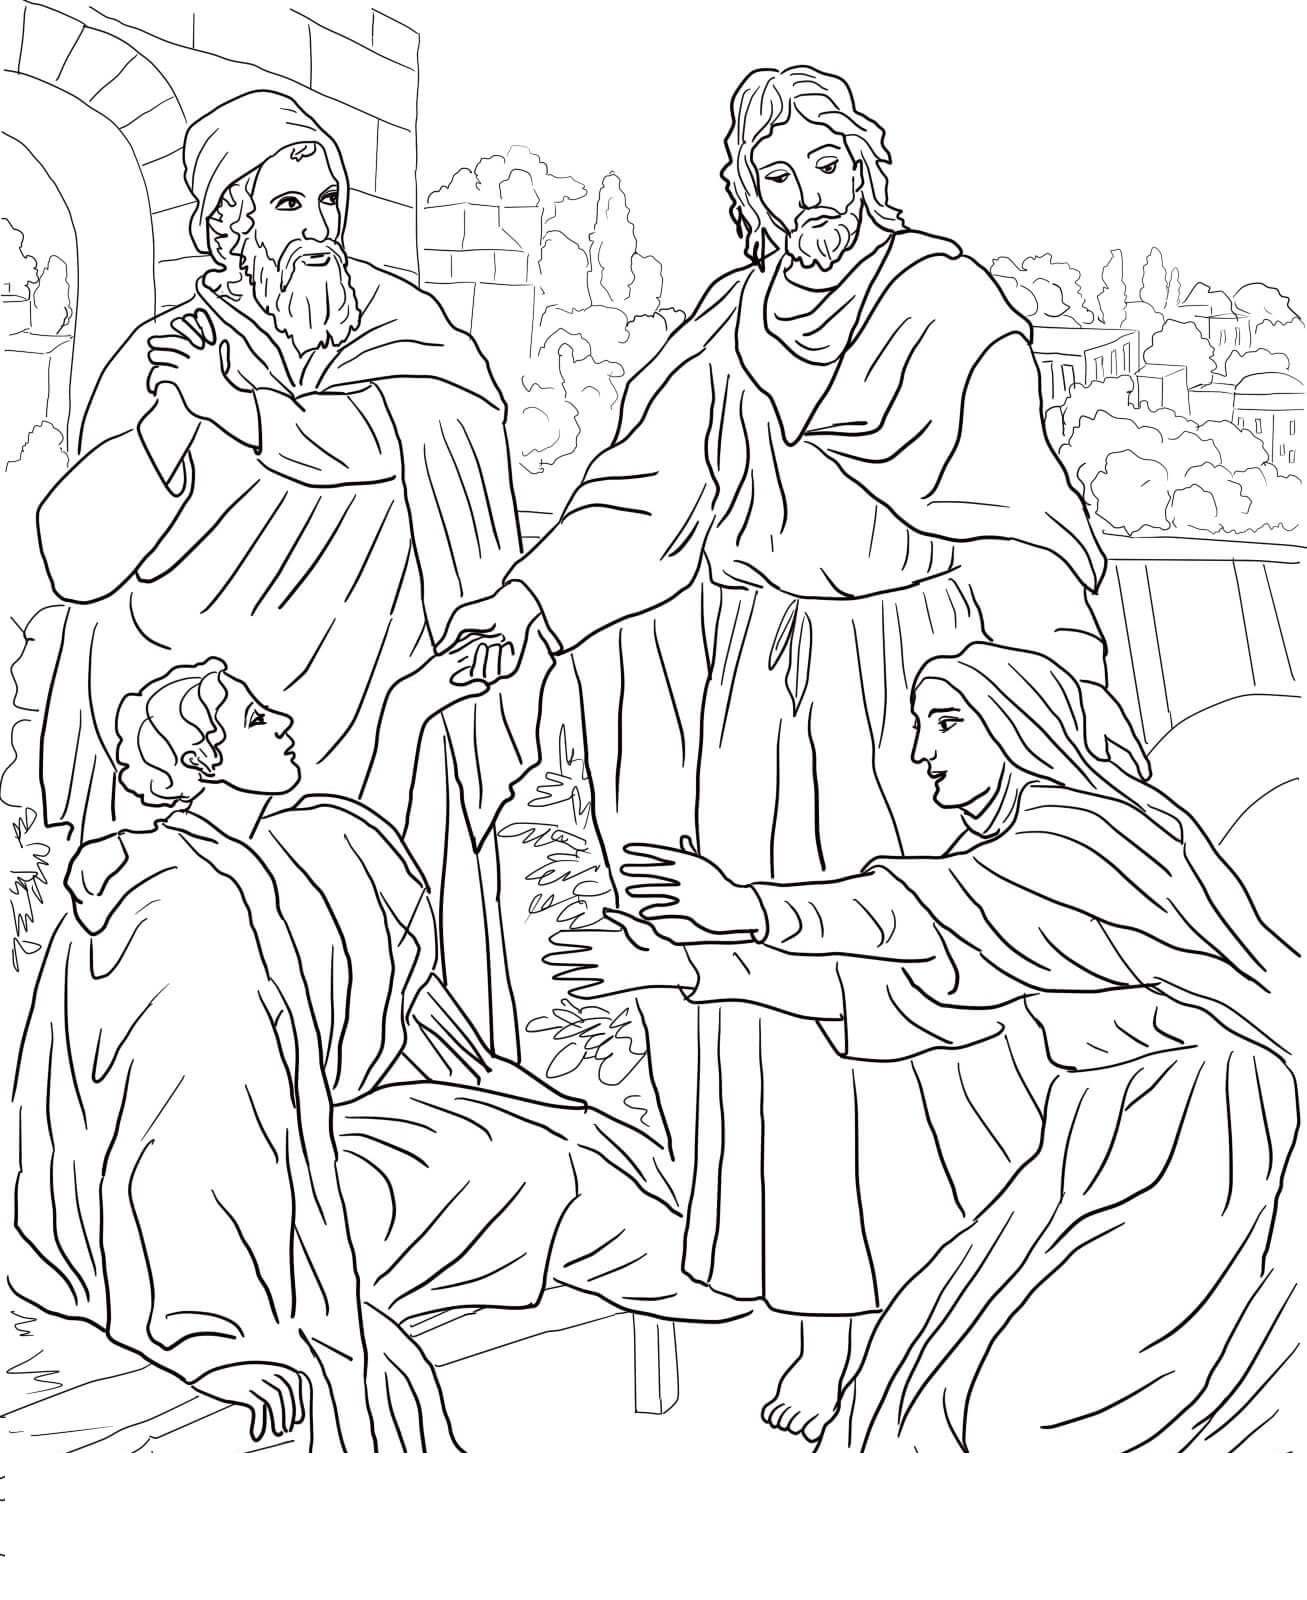 lazarus coloring pages lazarus and friend